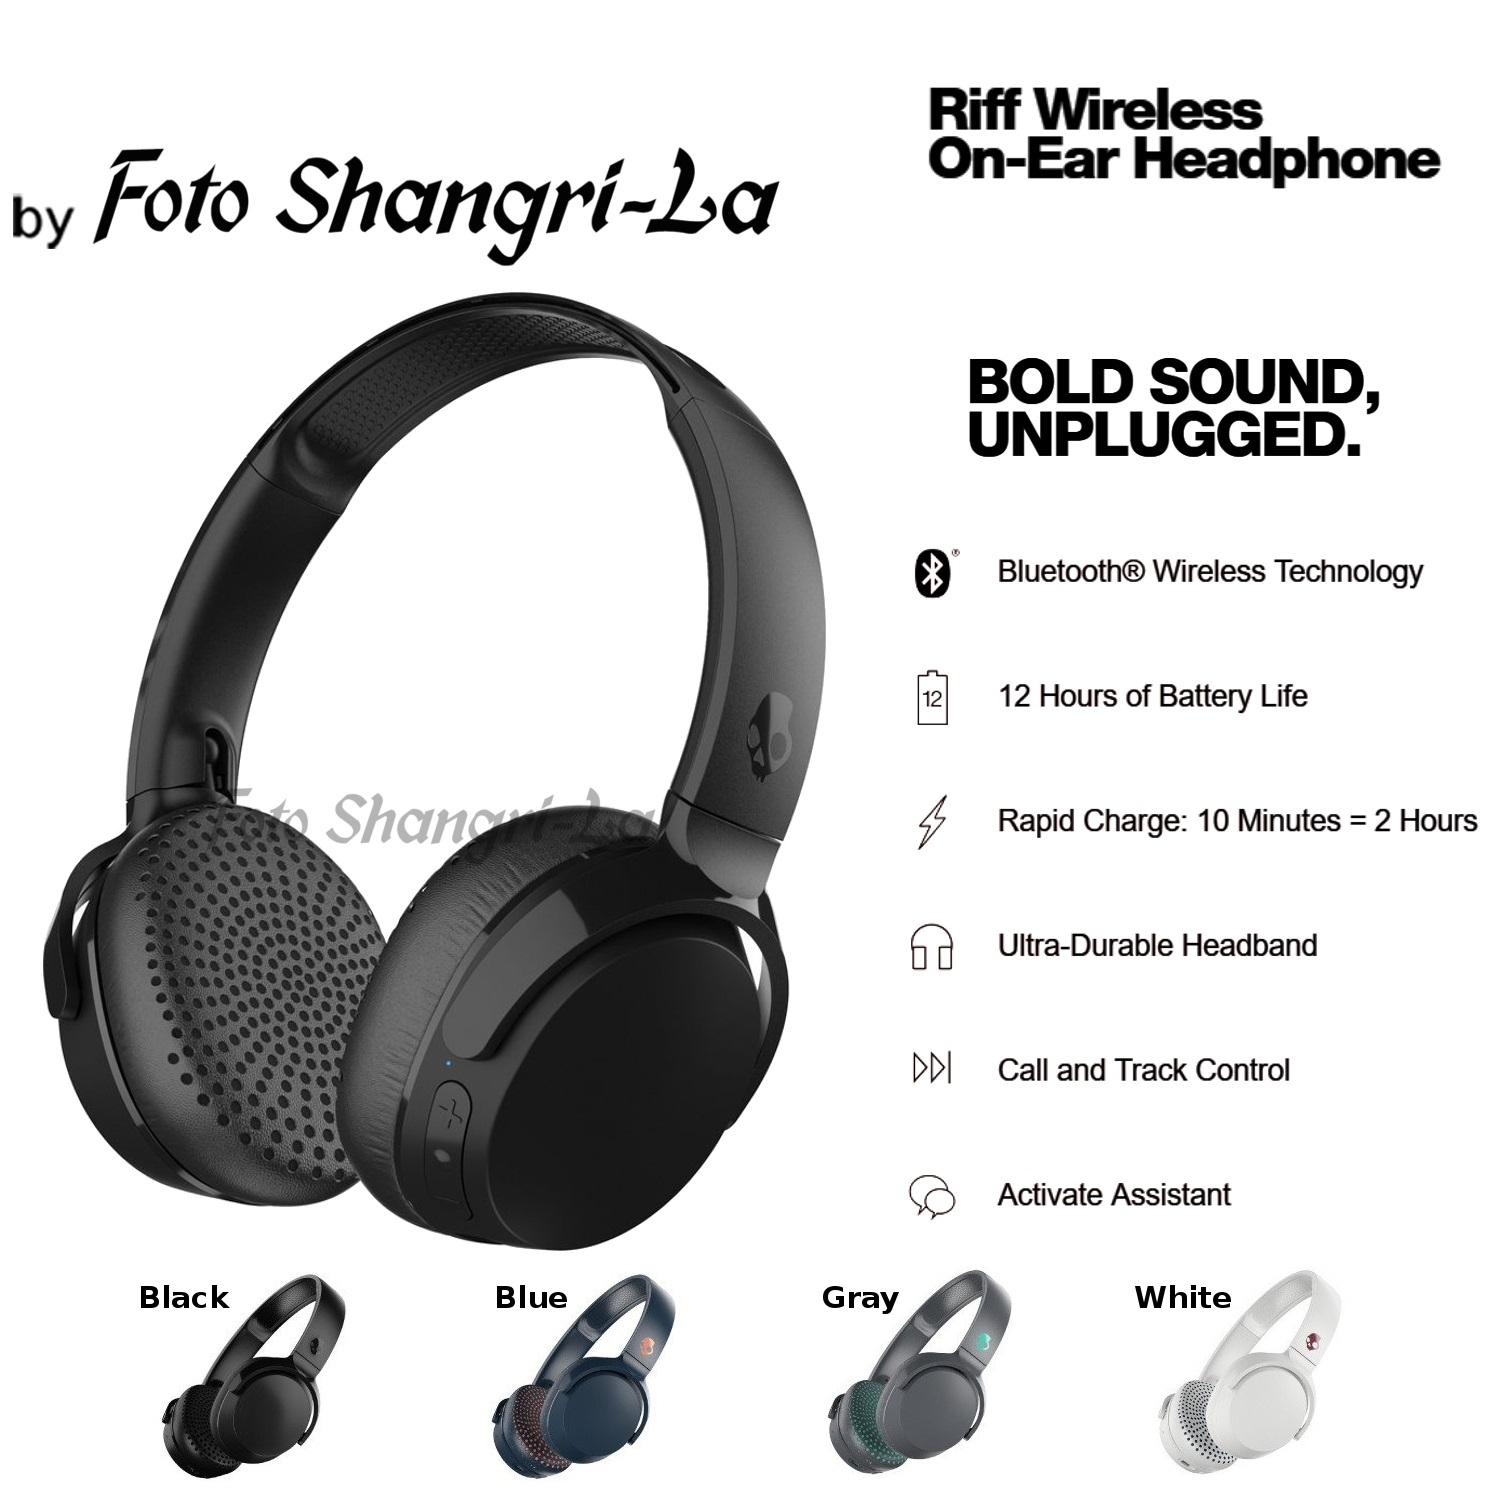 Skullcandy Riff Wireless On-Ear Headphone With Fordable Ultra-Durable Headband